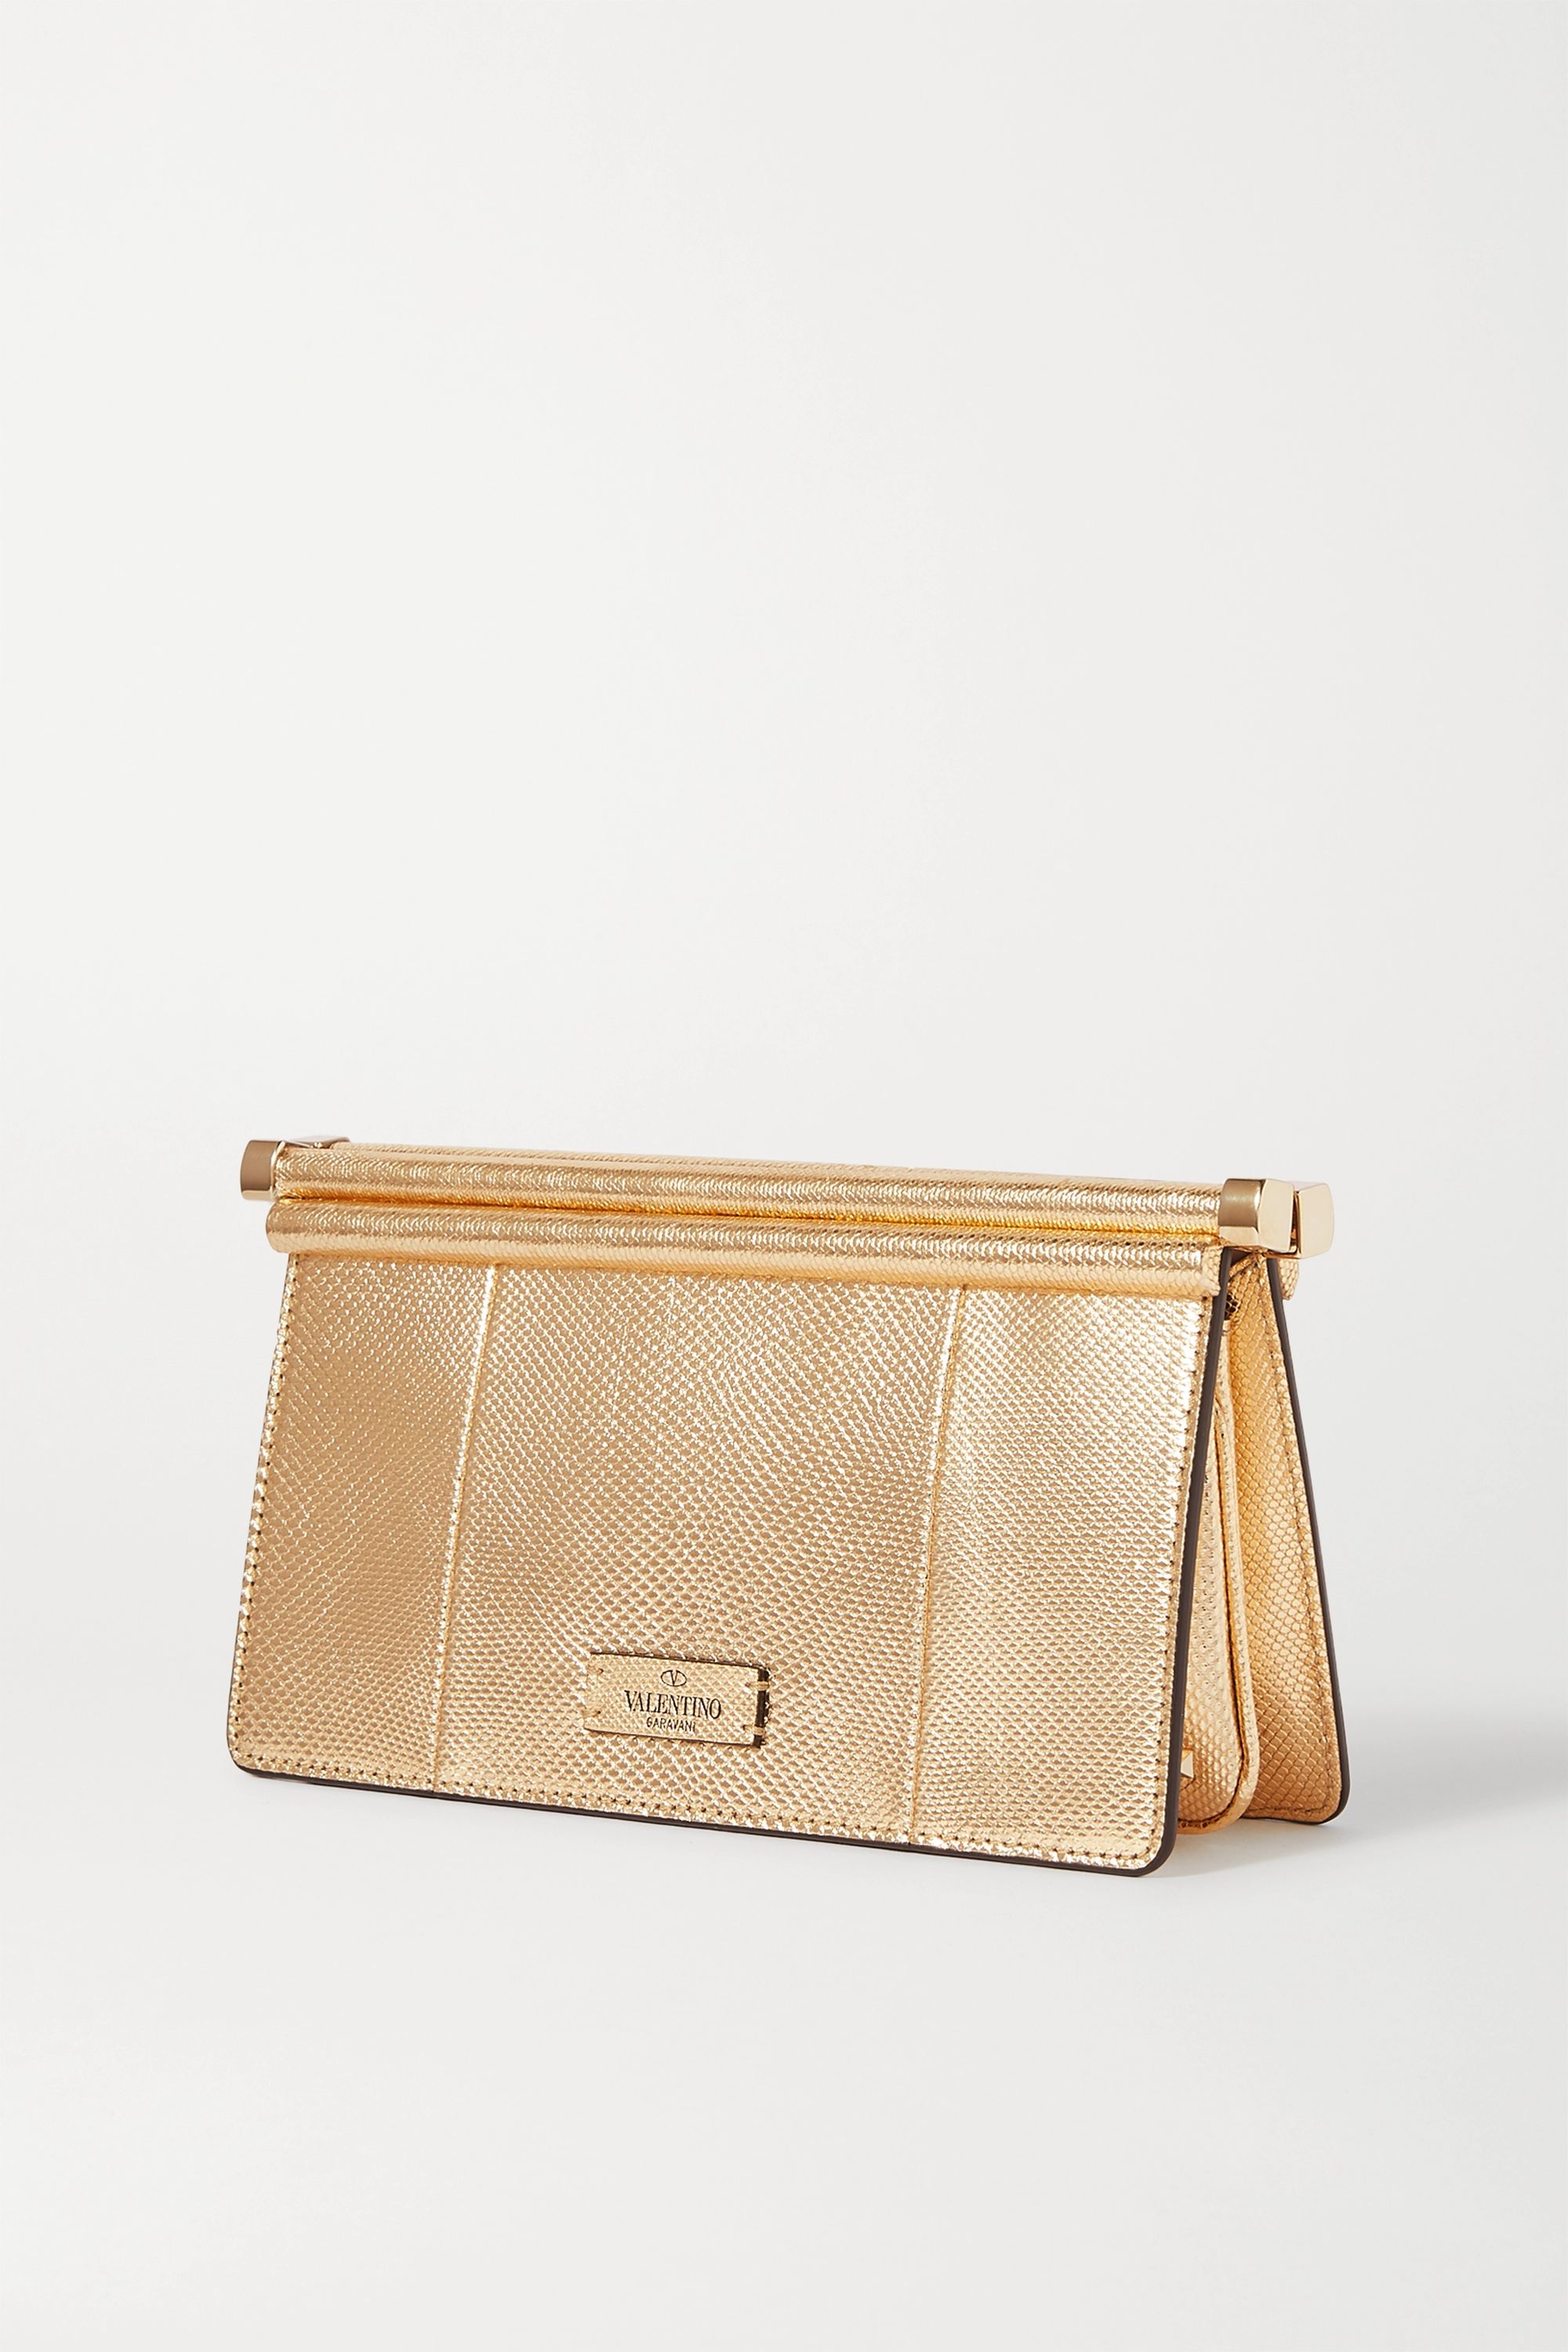 Valentino Carry Secrets metallic snake-effect leather clutch